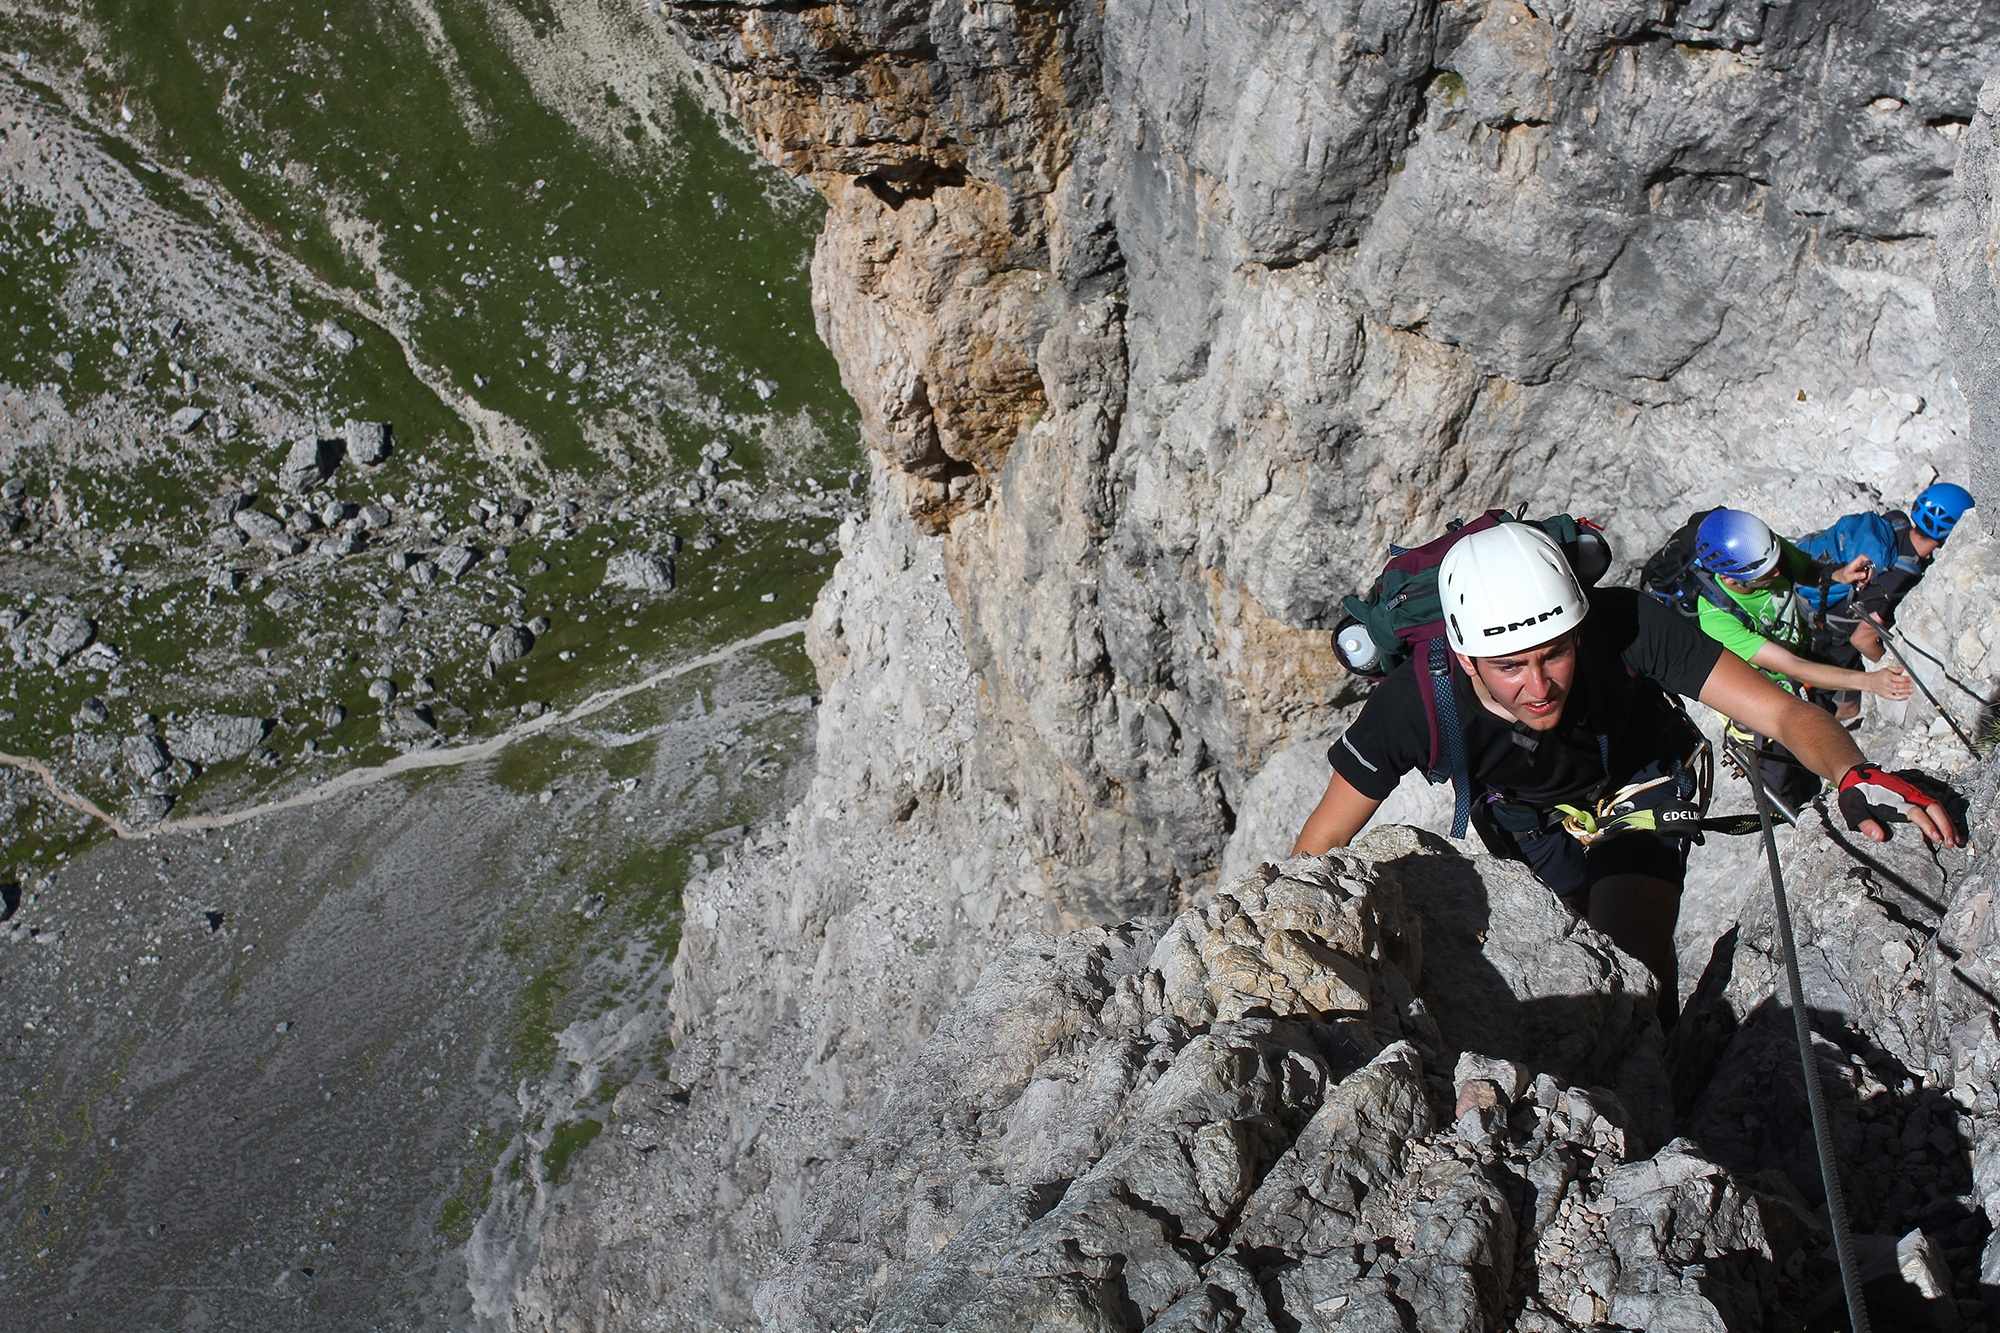 Tom Fullen topping out of the Dolomites Via Ferrata route